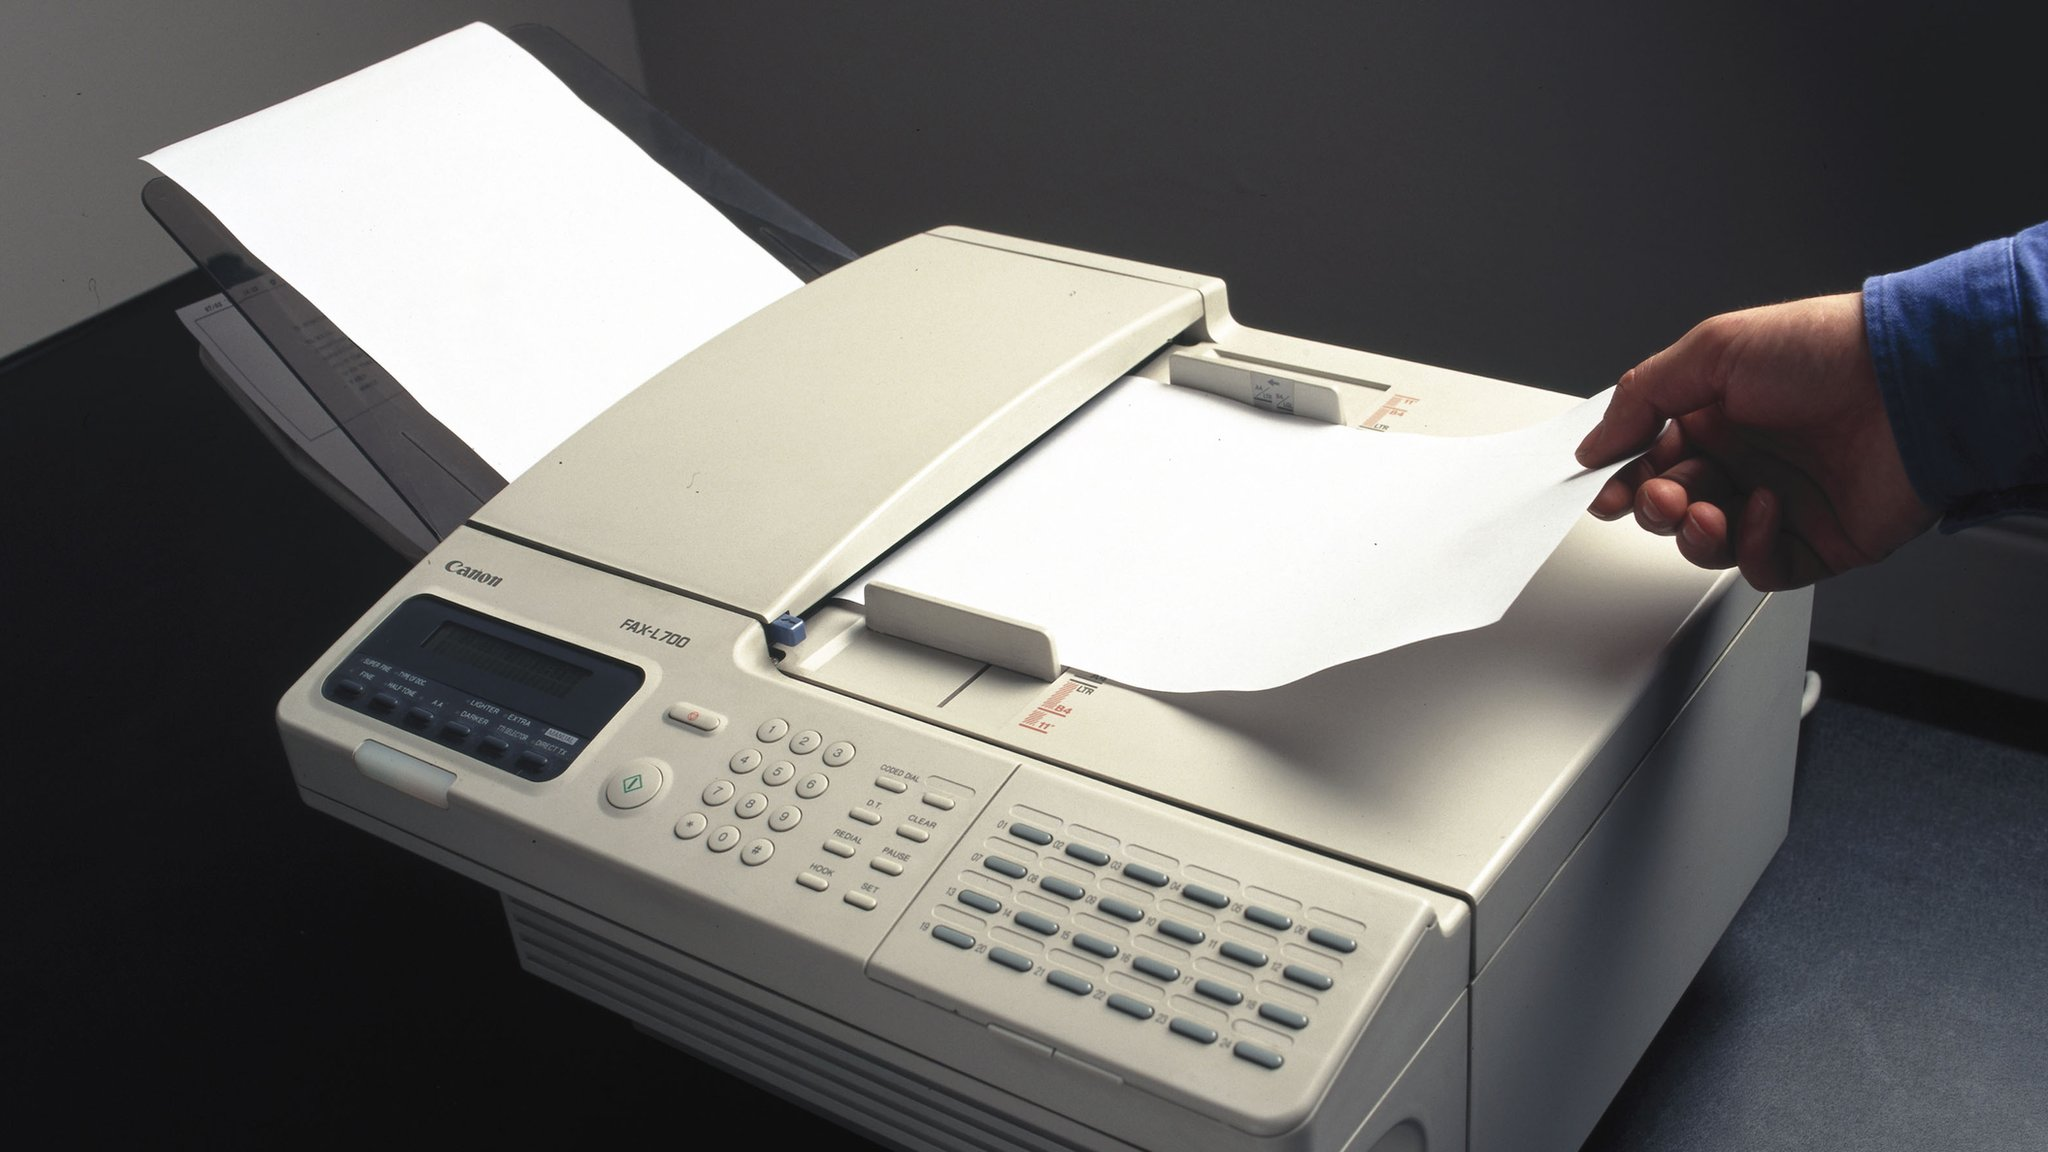 Malicious faxes leave firms 'open' to cyber-attack